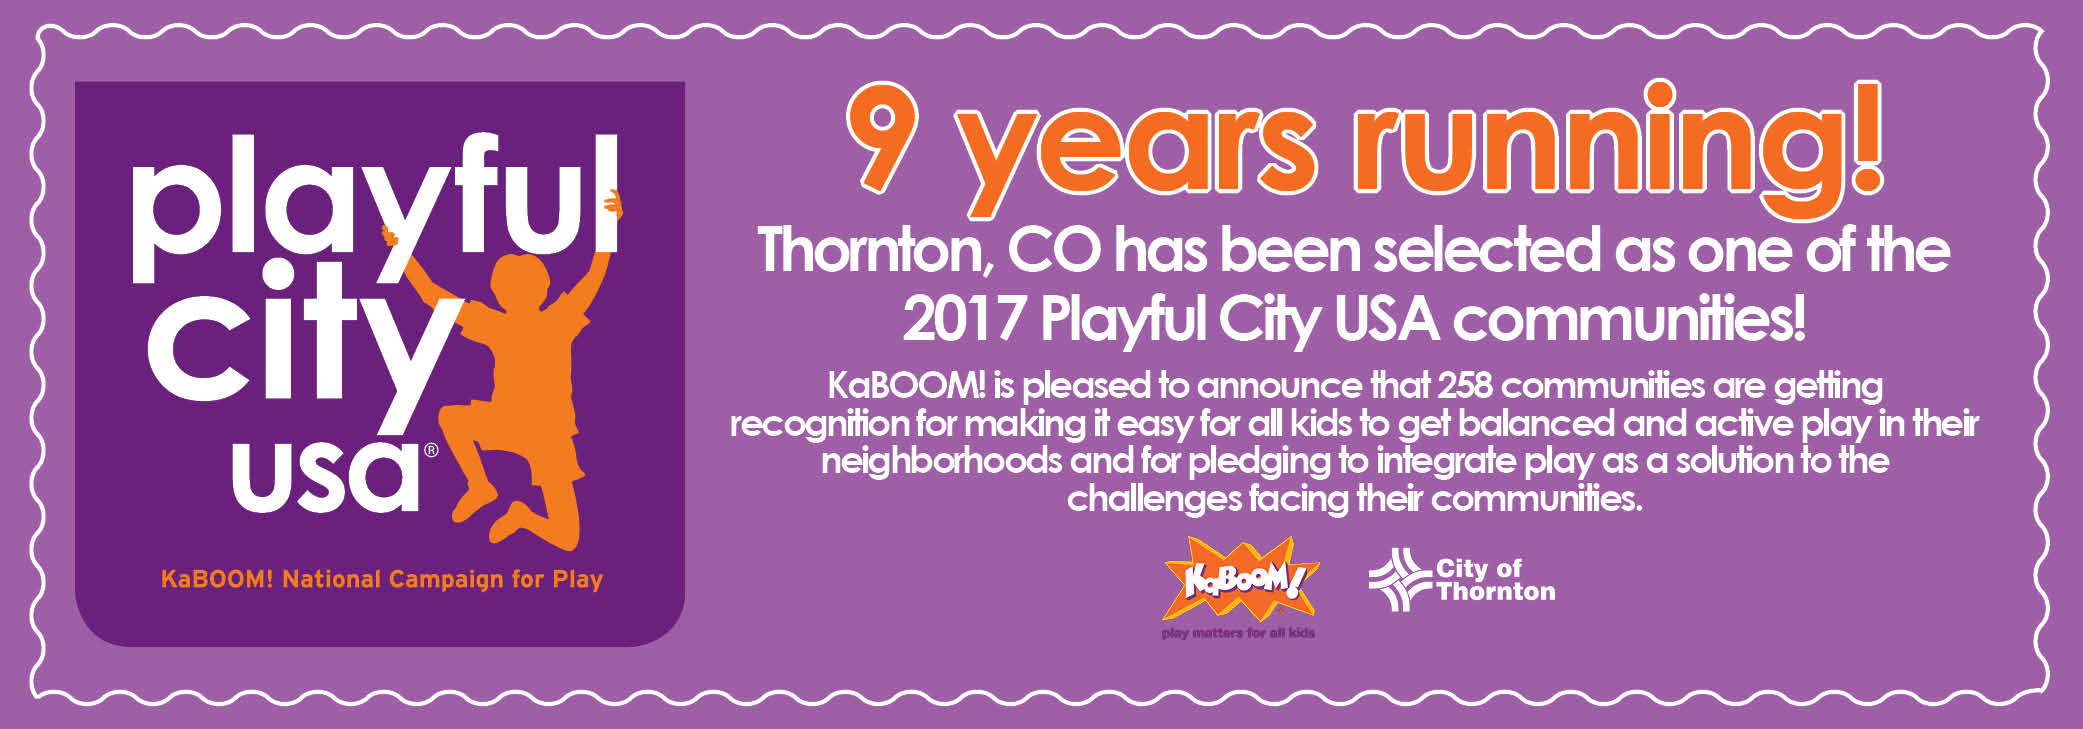 Playful City Web Banner Ad.jpg